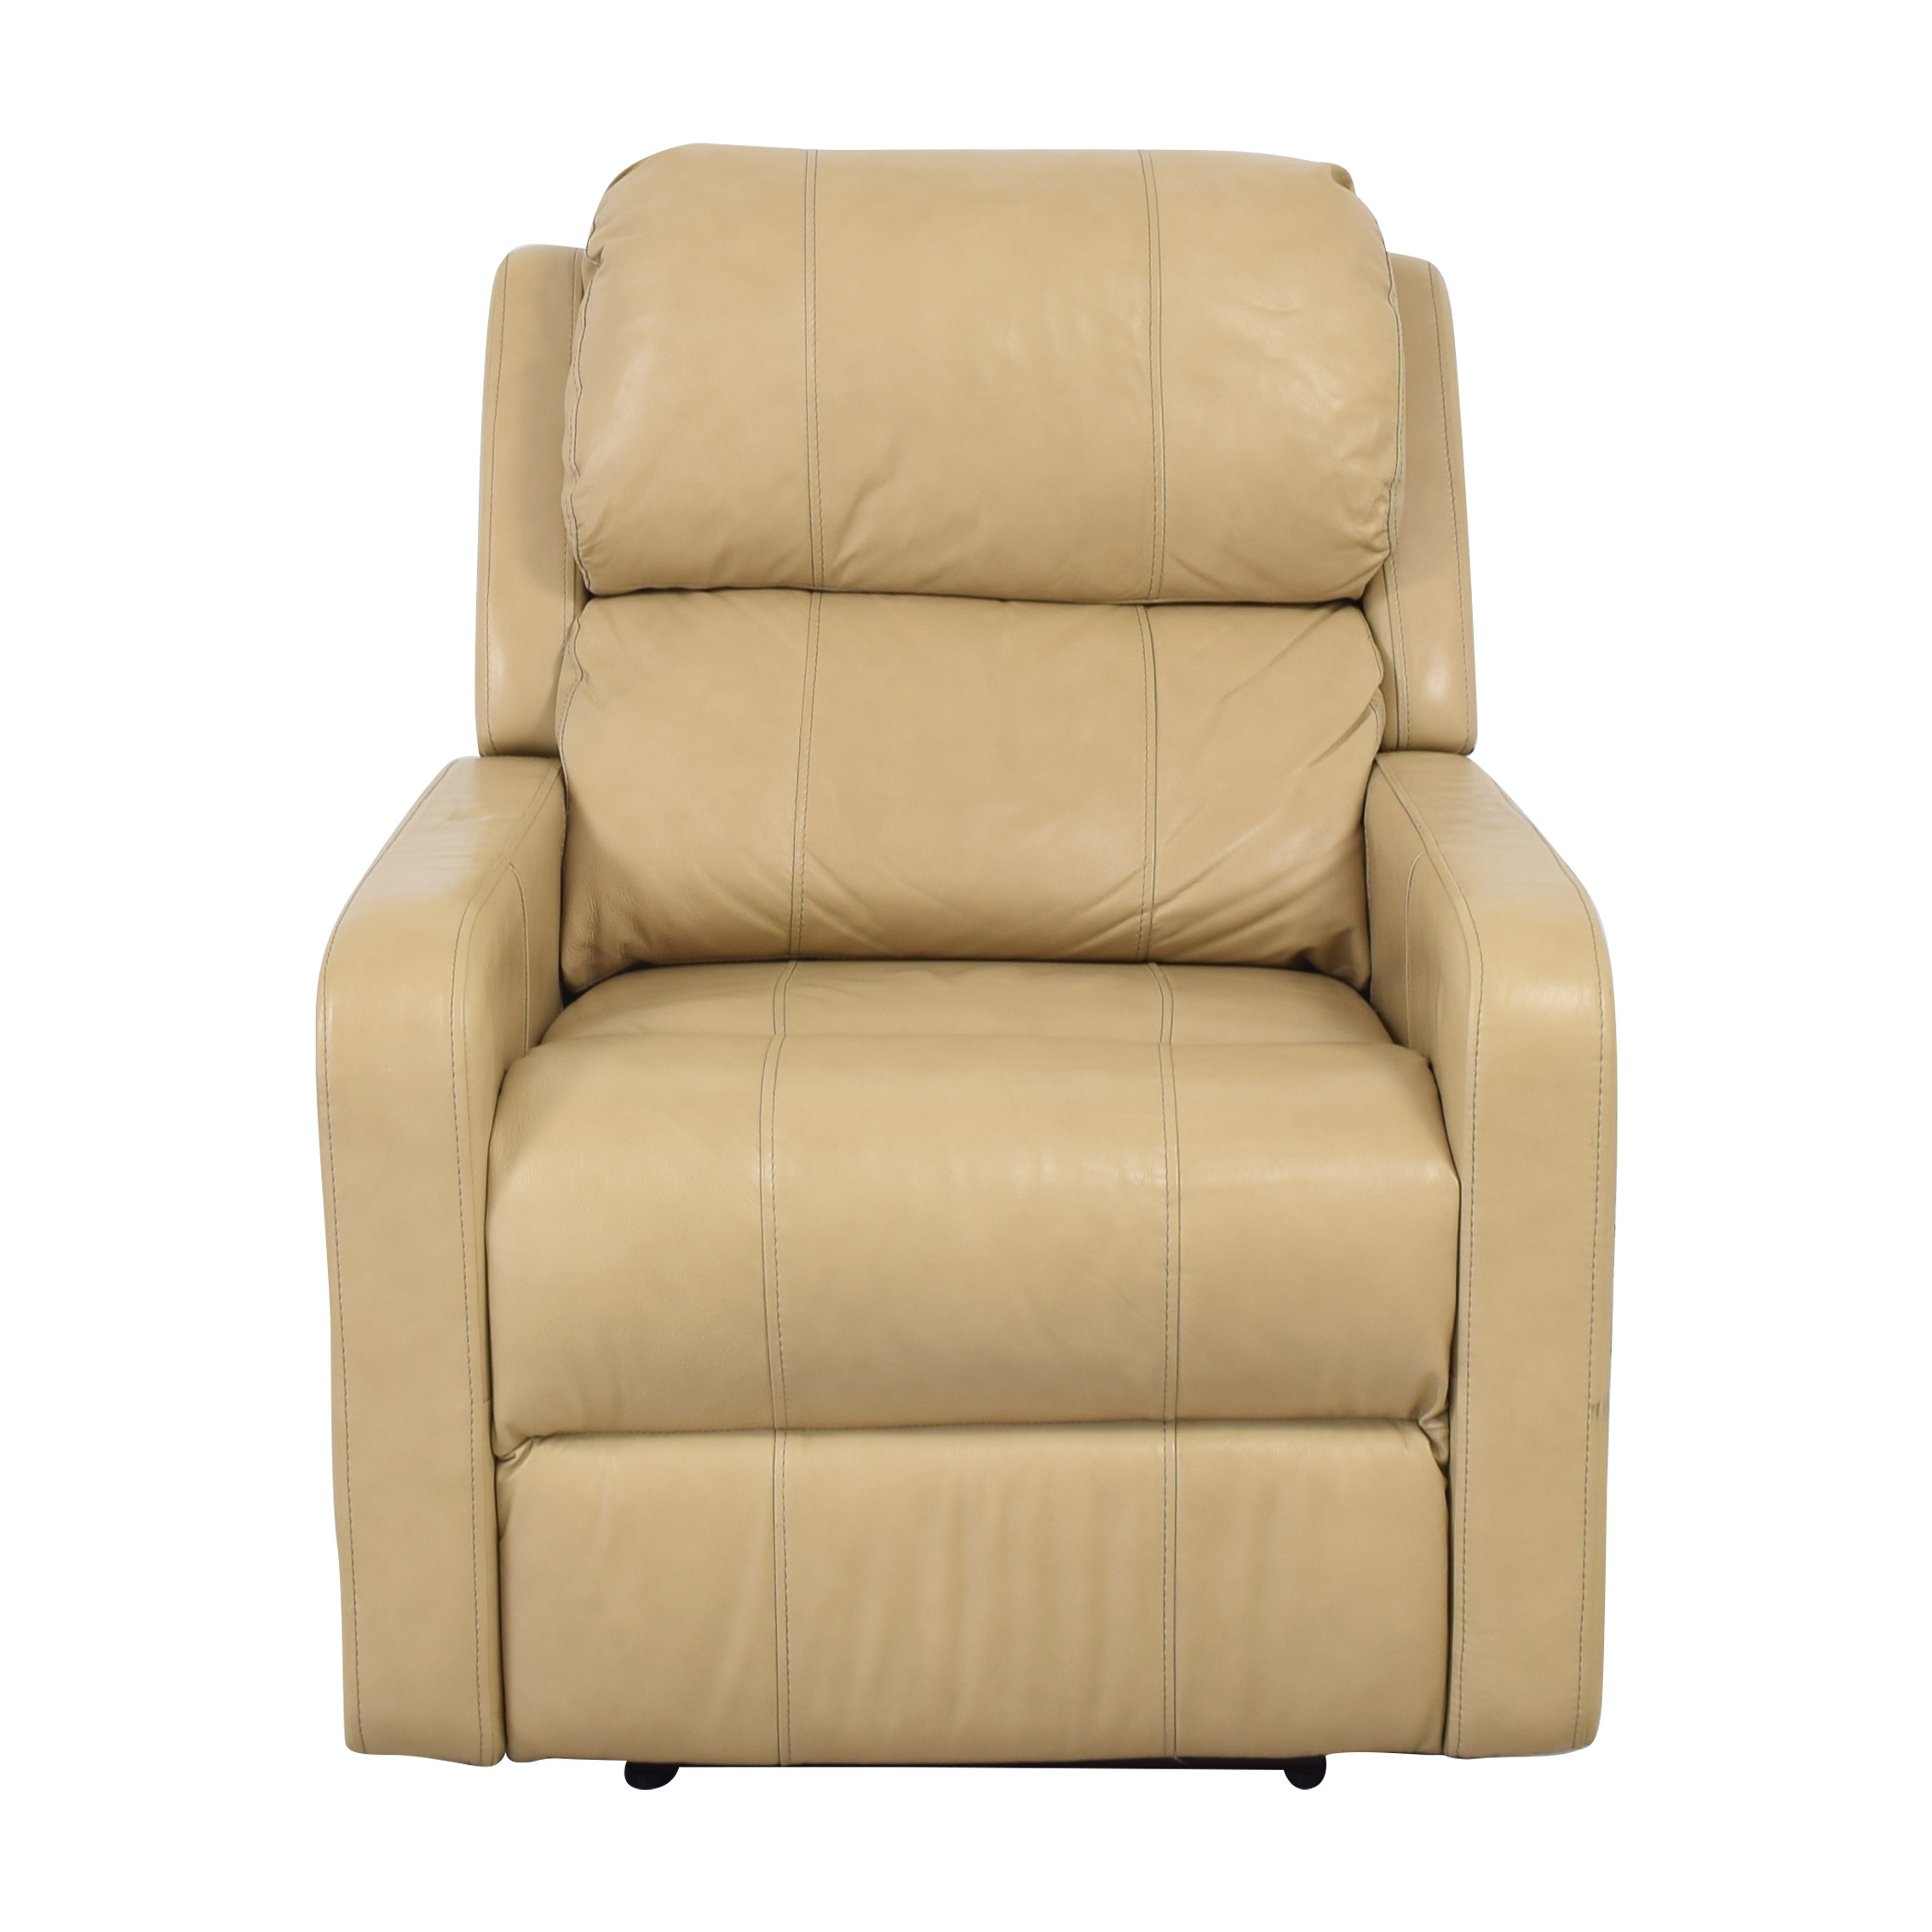 Macy's Macy's Power Recliner pa